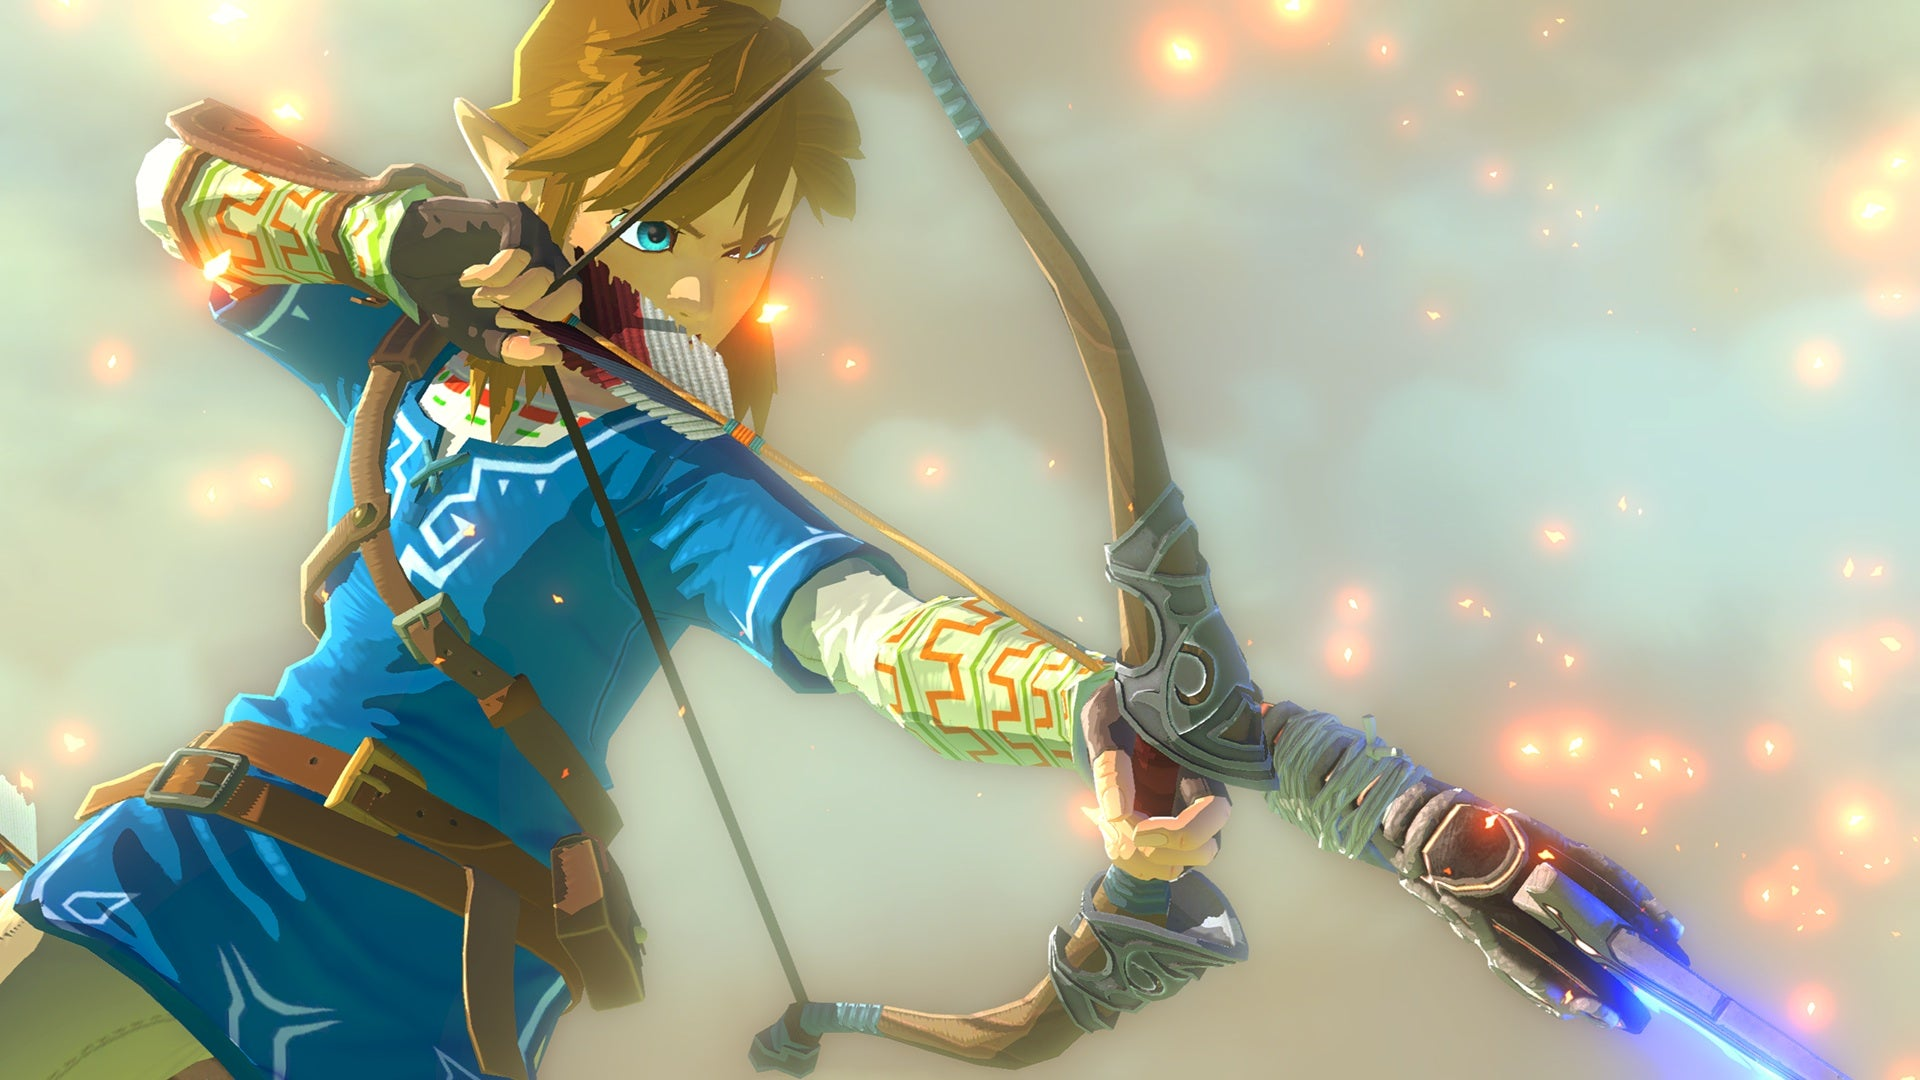 The New Legend of Zelda Game Is Delayed to 2017